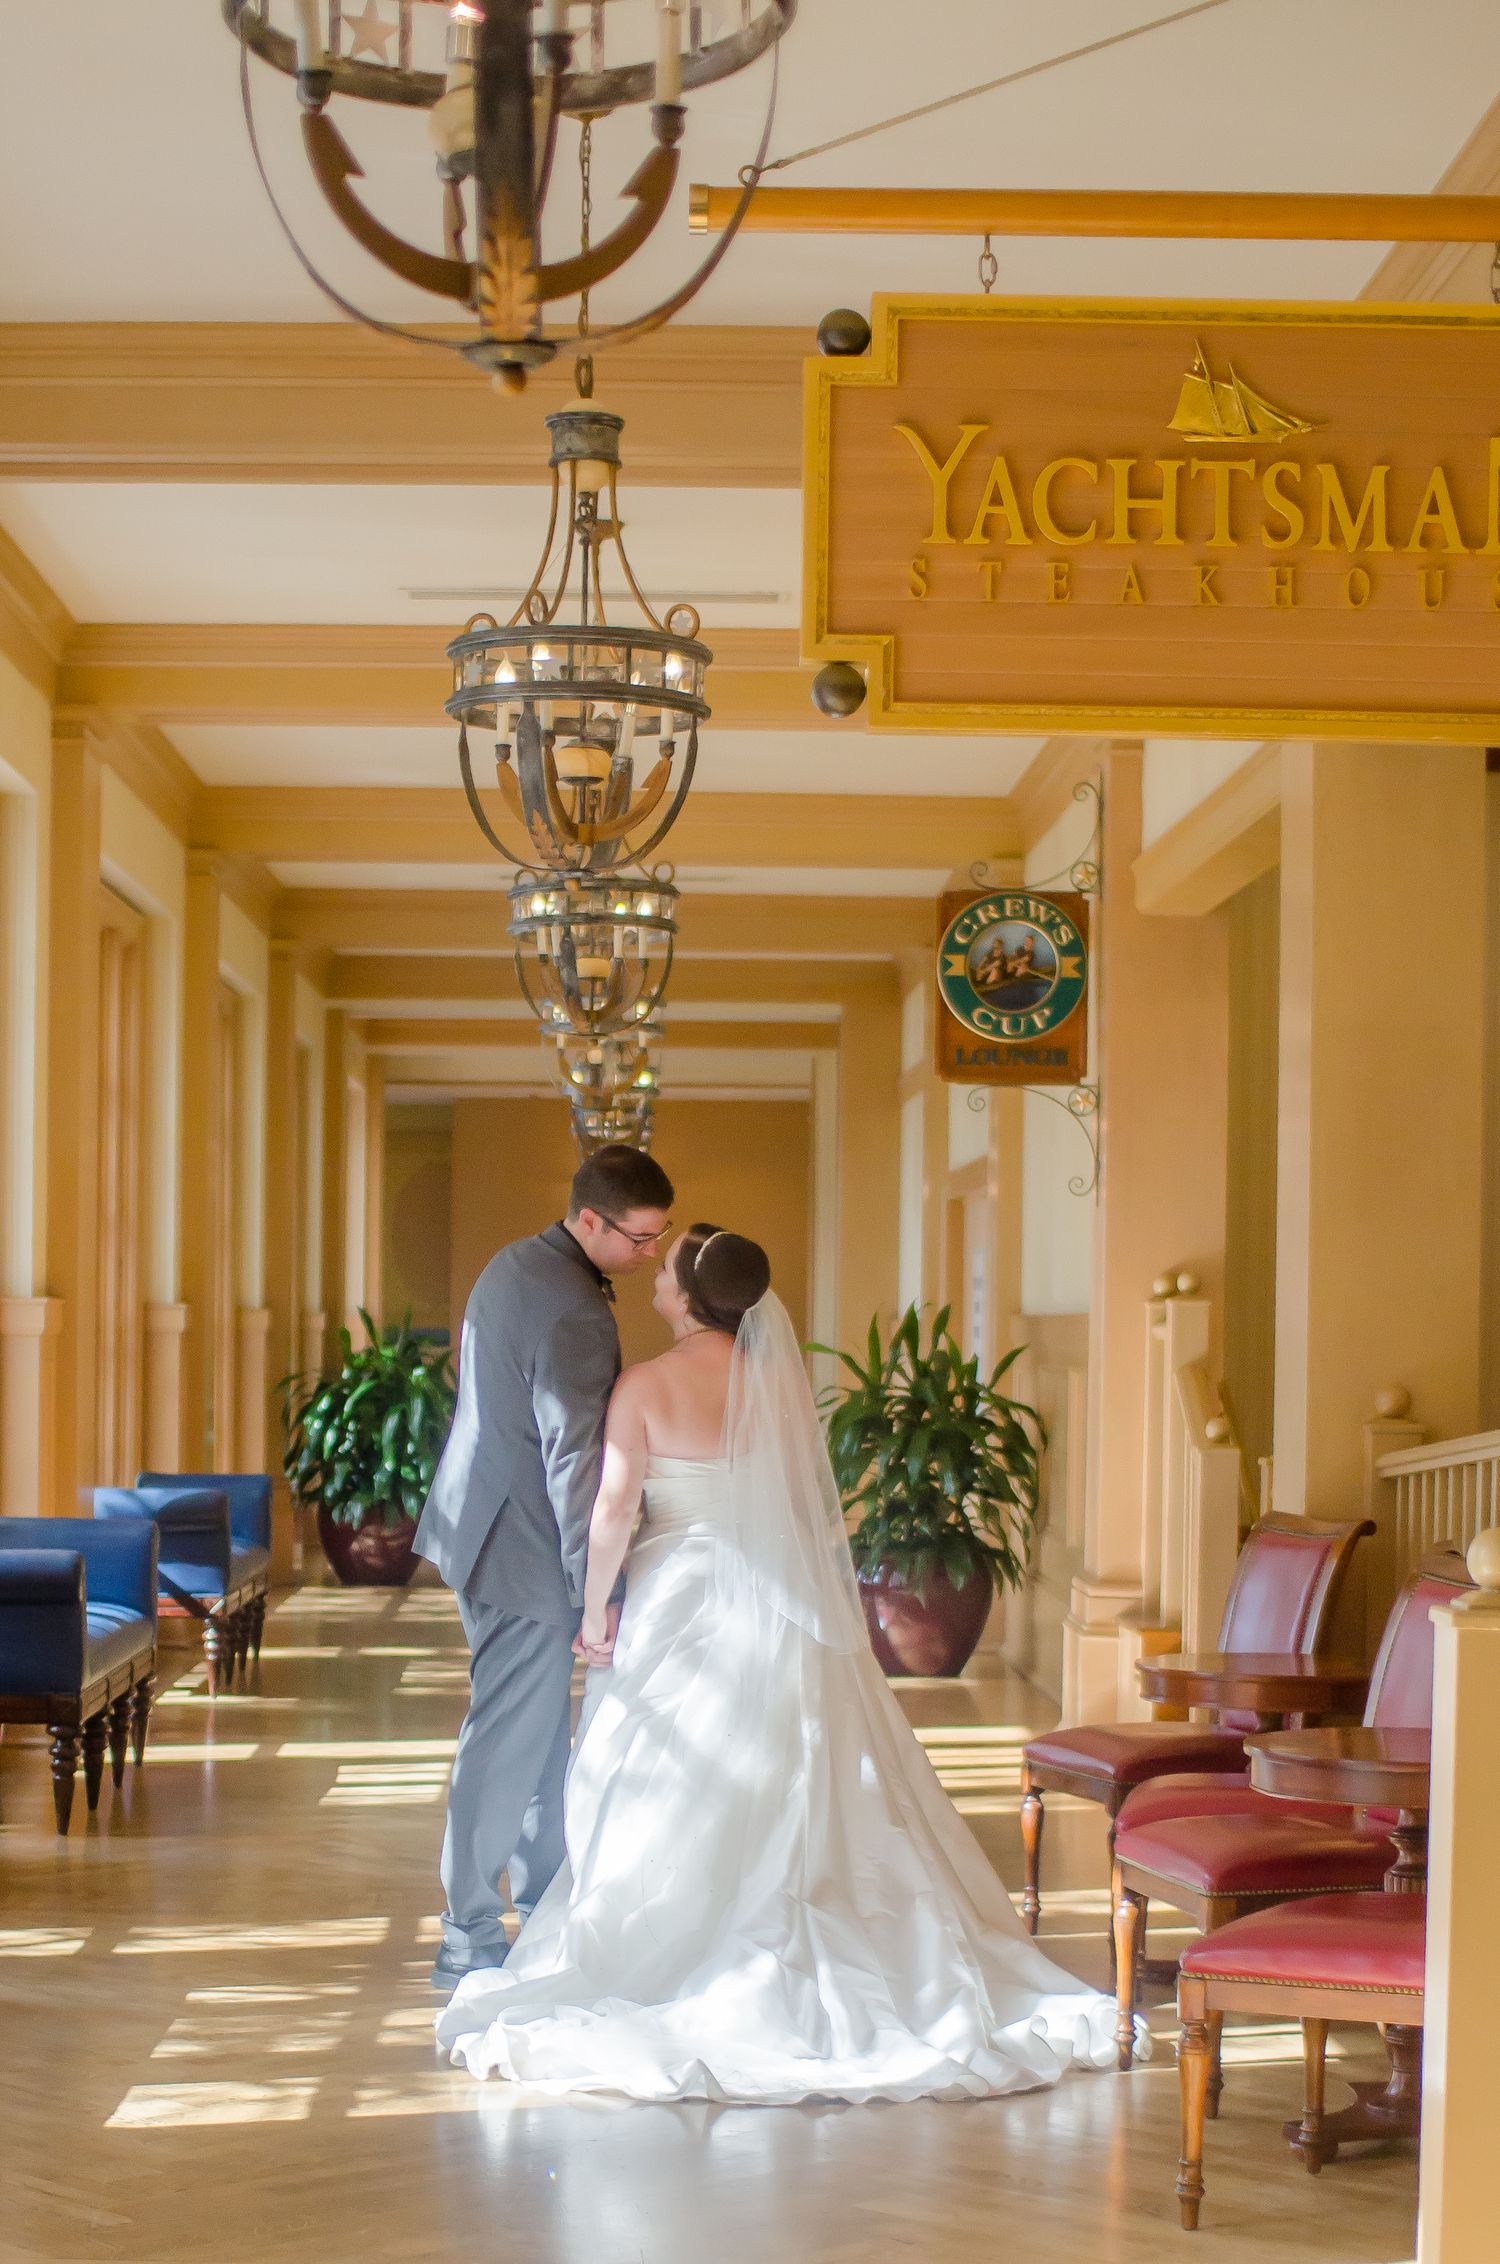 Bride and Groom walking in the hallway on their way to their Walt Disney World Yacht Club resort wedding